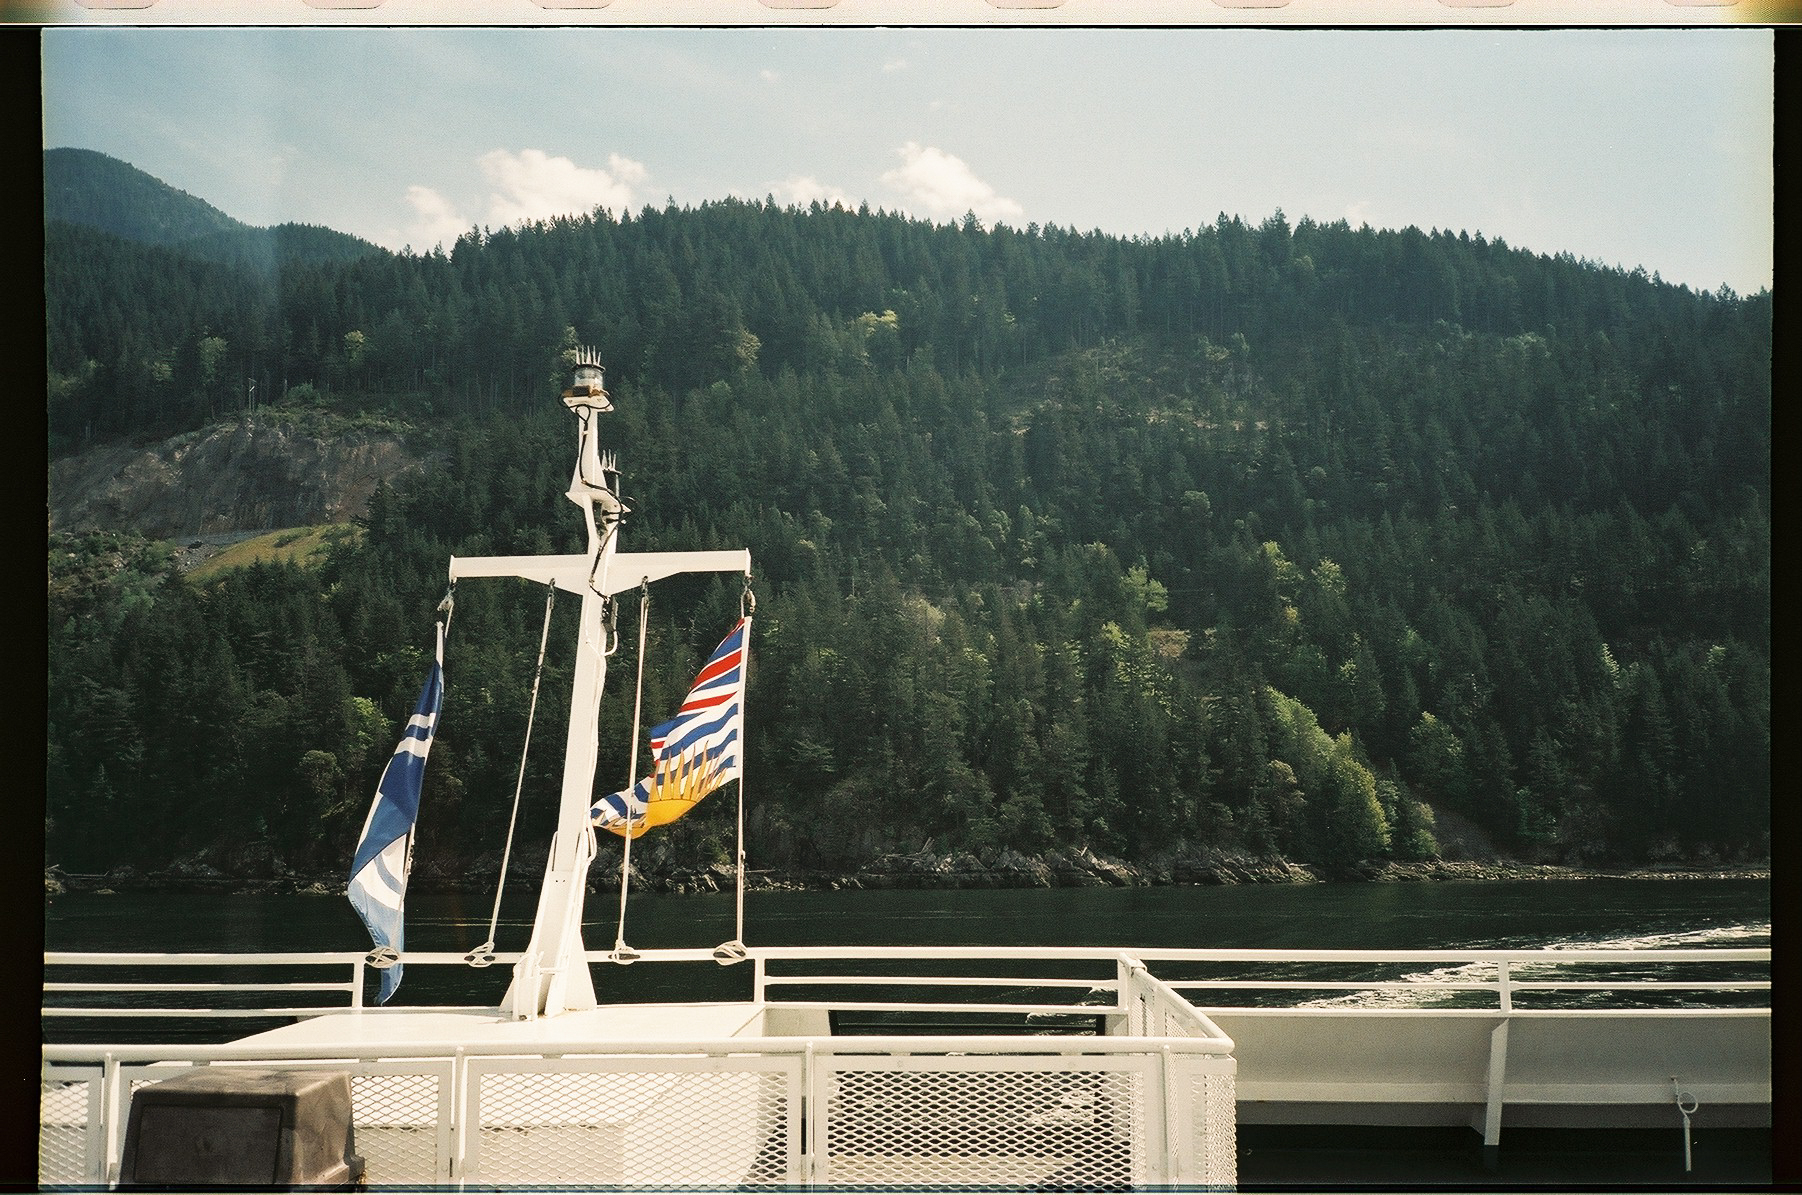 Departing Horseshoe Bay, looking back at the Sea to Sky Highway